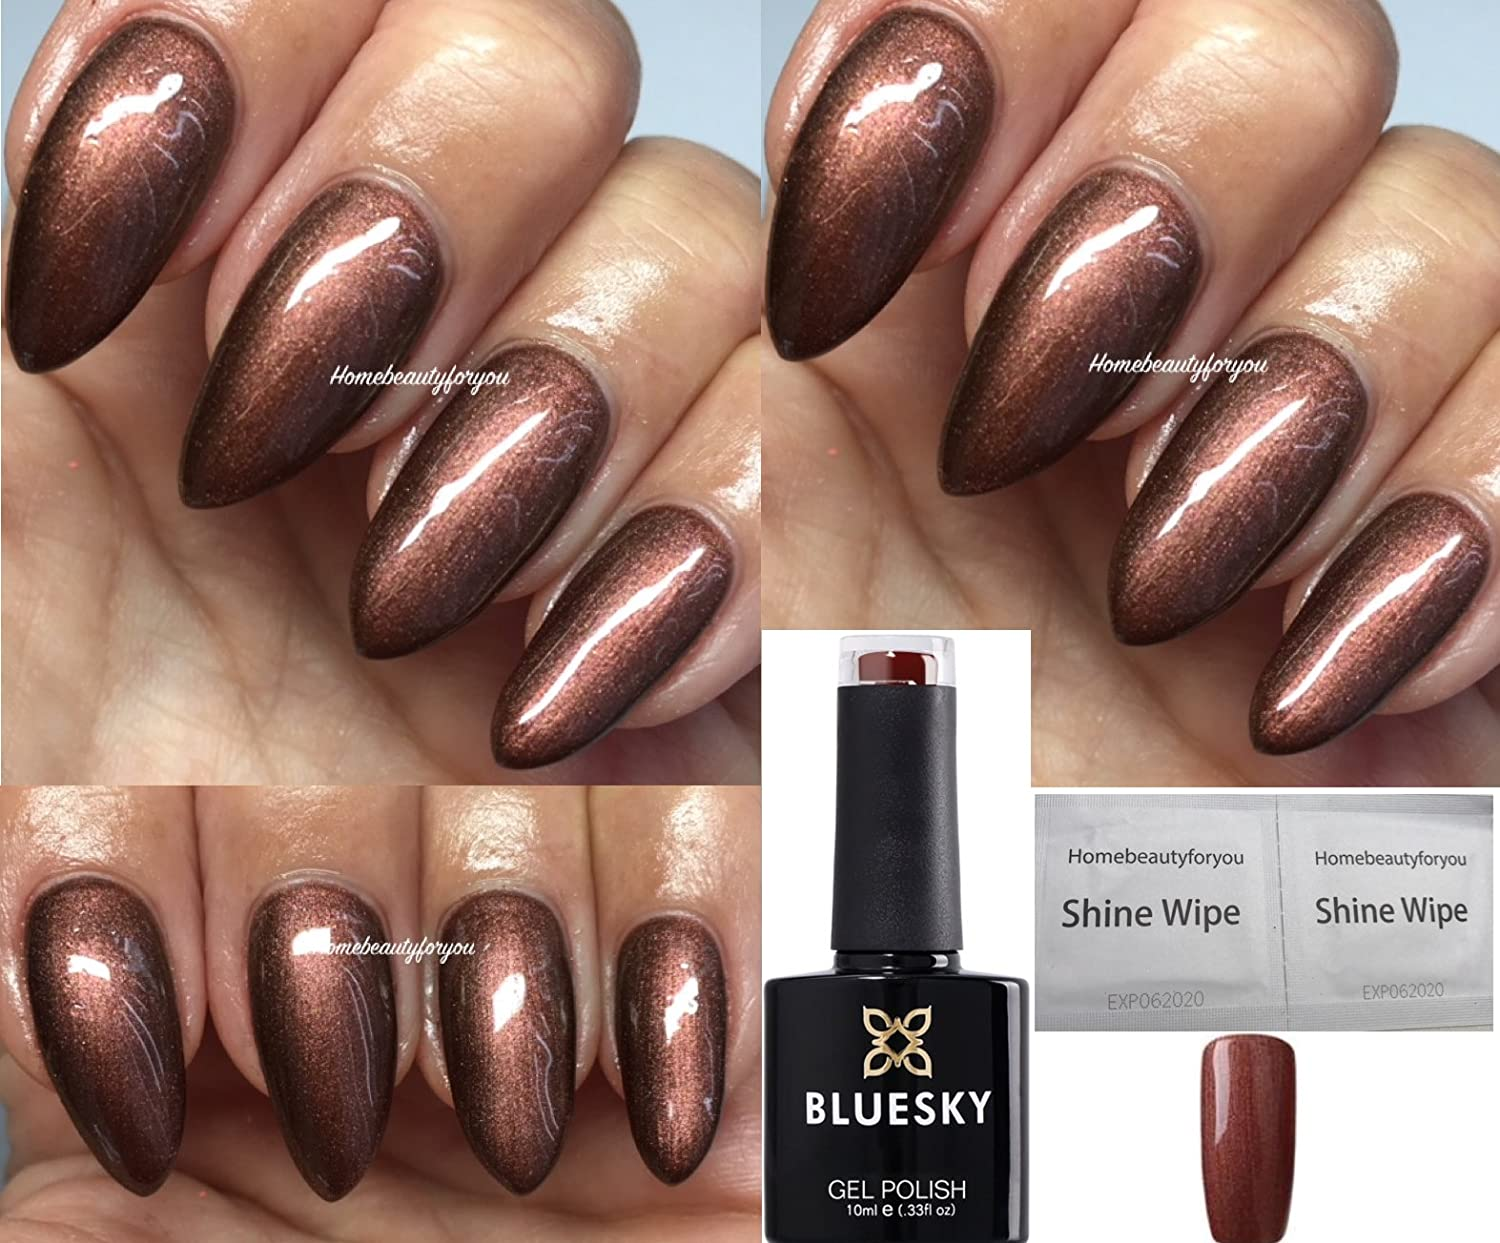 Bluesky 80629 Leather Satchell Craft Culture, Metallic Bronze Brown Nail Gel Polish UV LED Soak Off 10ml PLUS 2 Homebeautyforyou Shine Wipes LTD